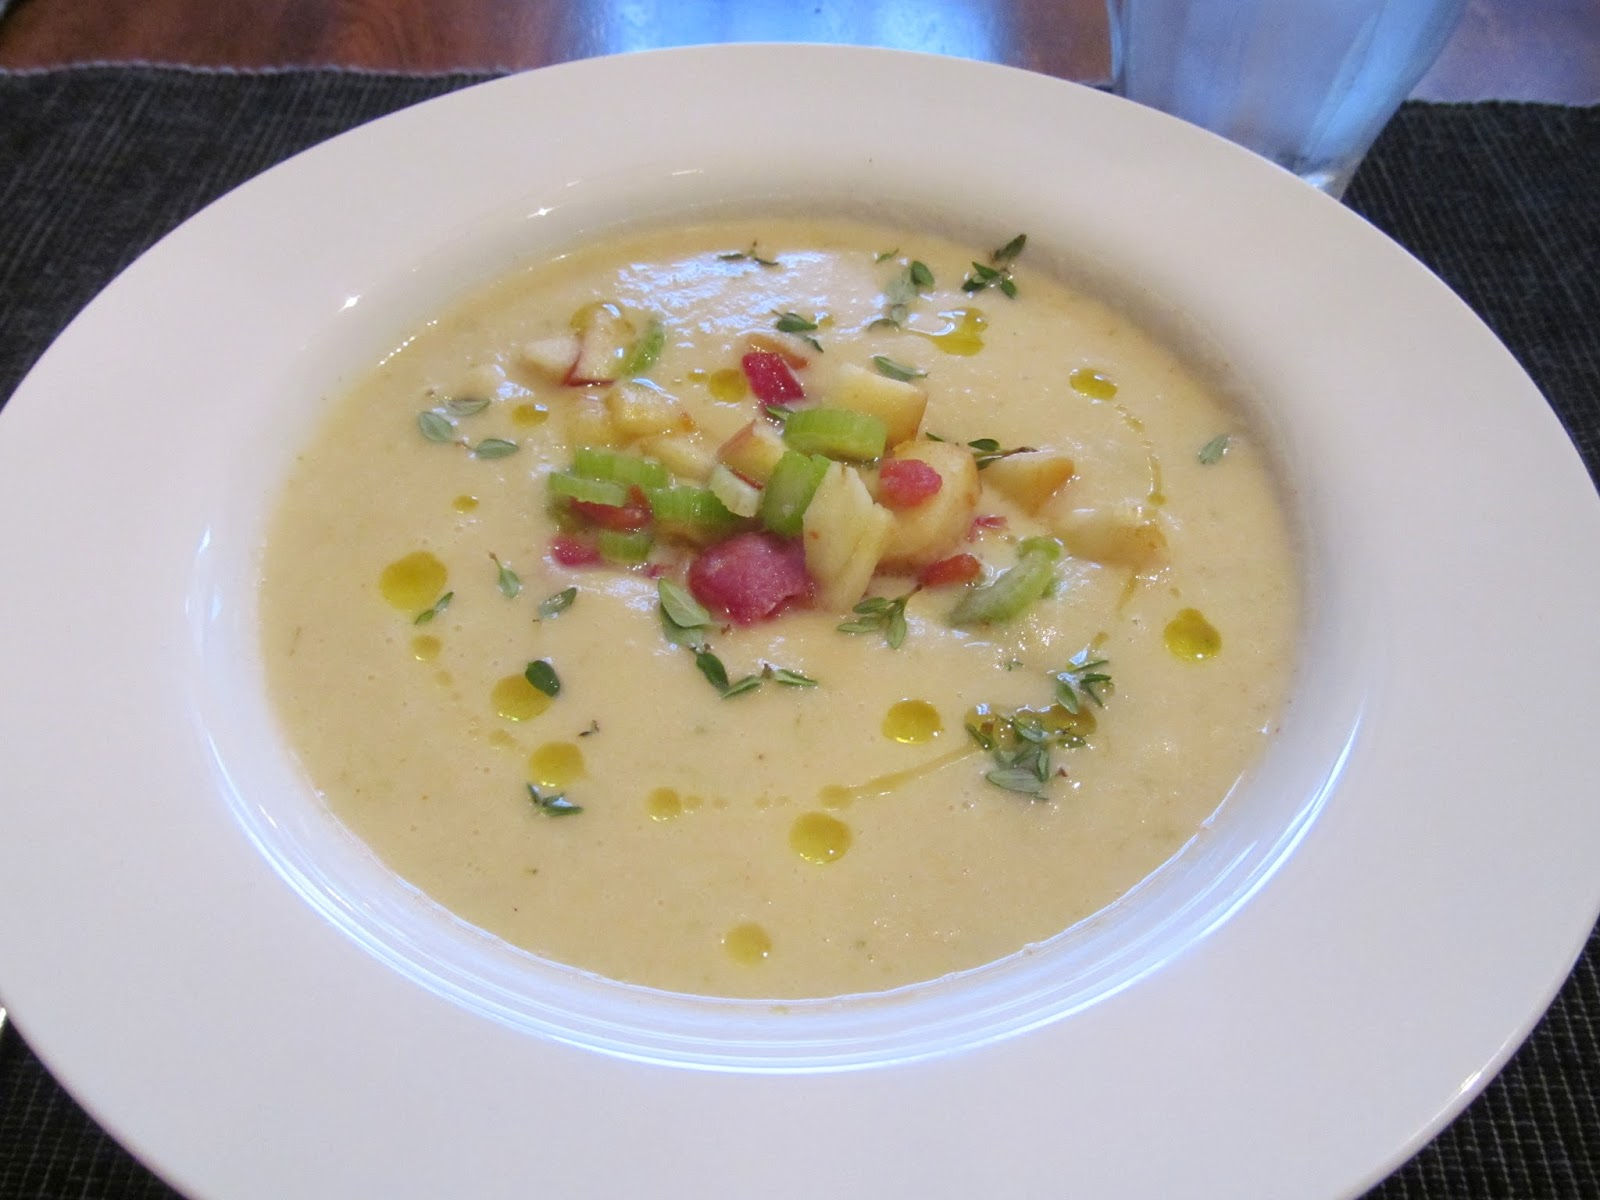 root puree puréed celery root soup with celery root or celeriac soup ...